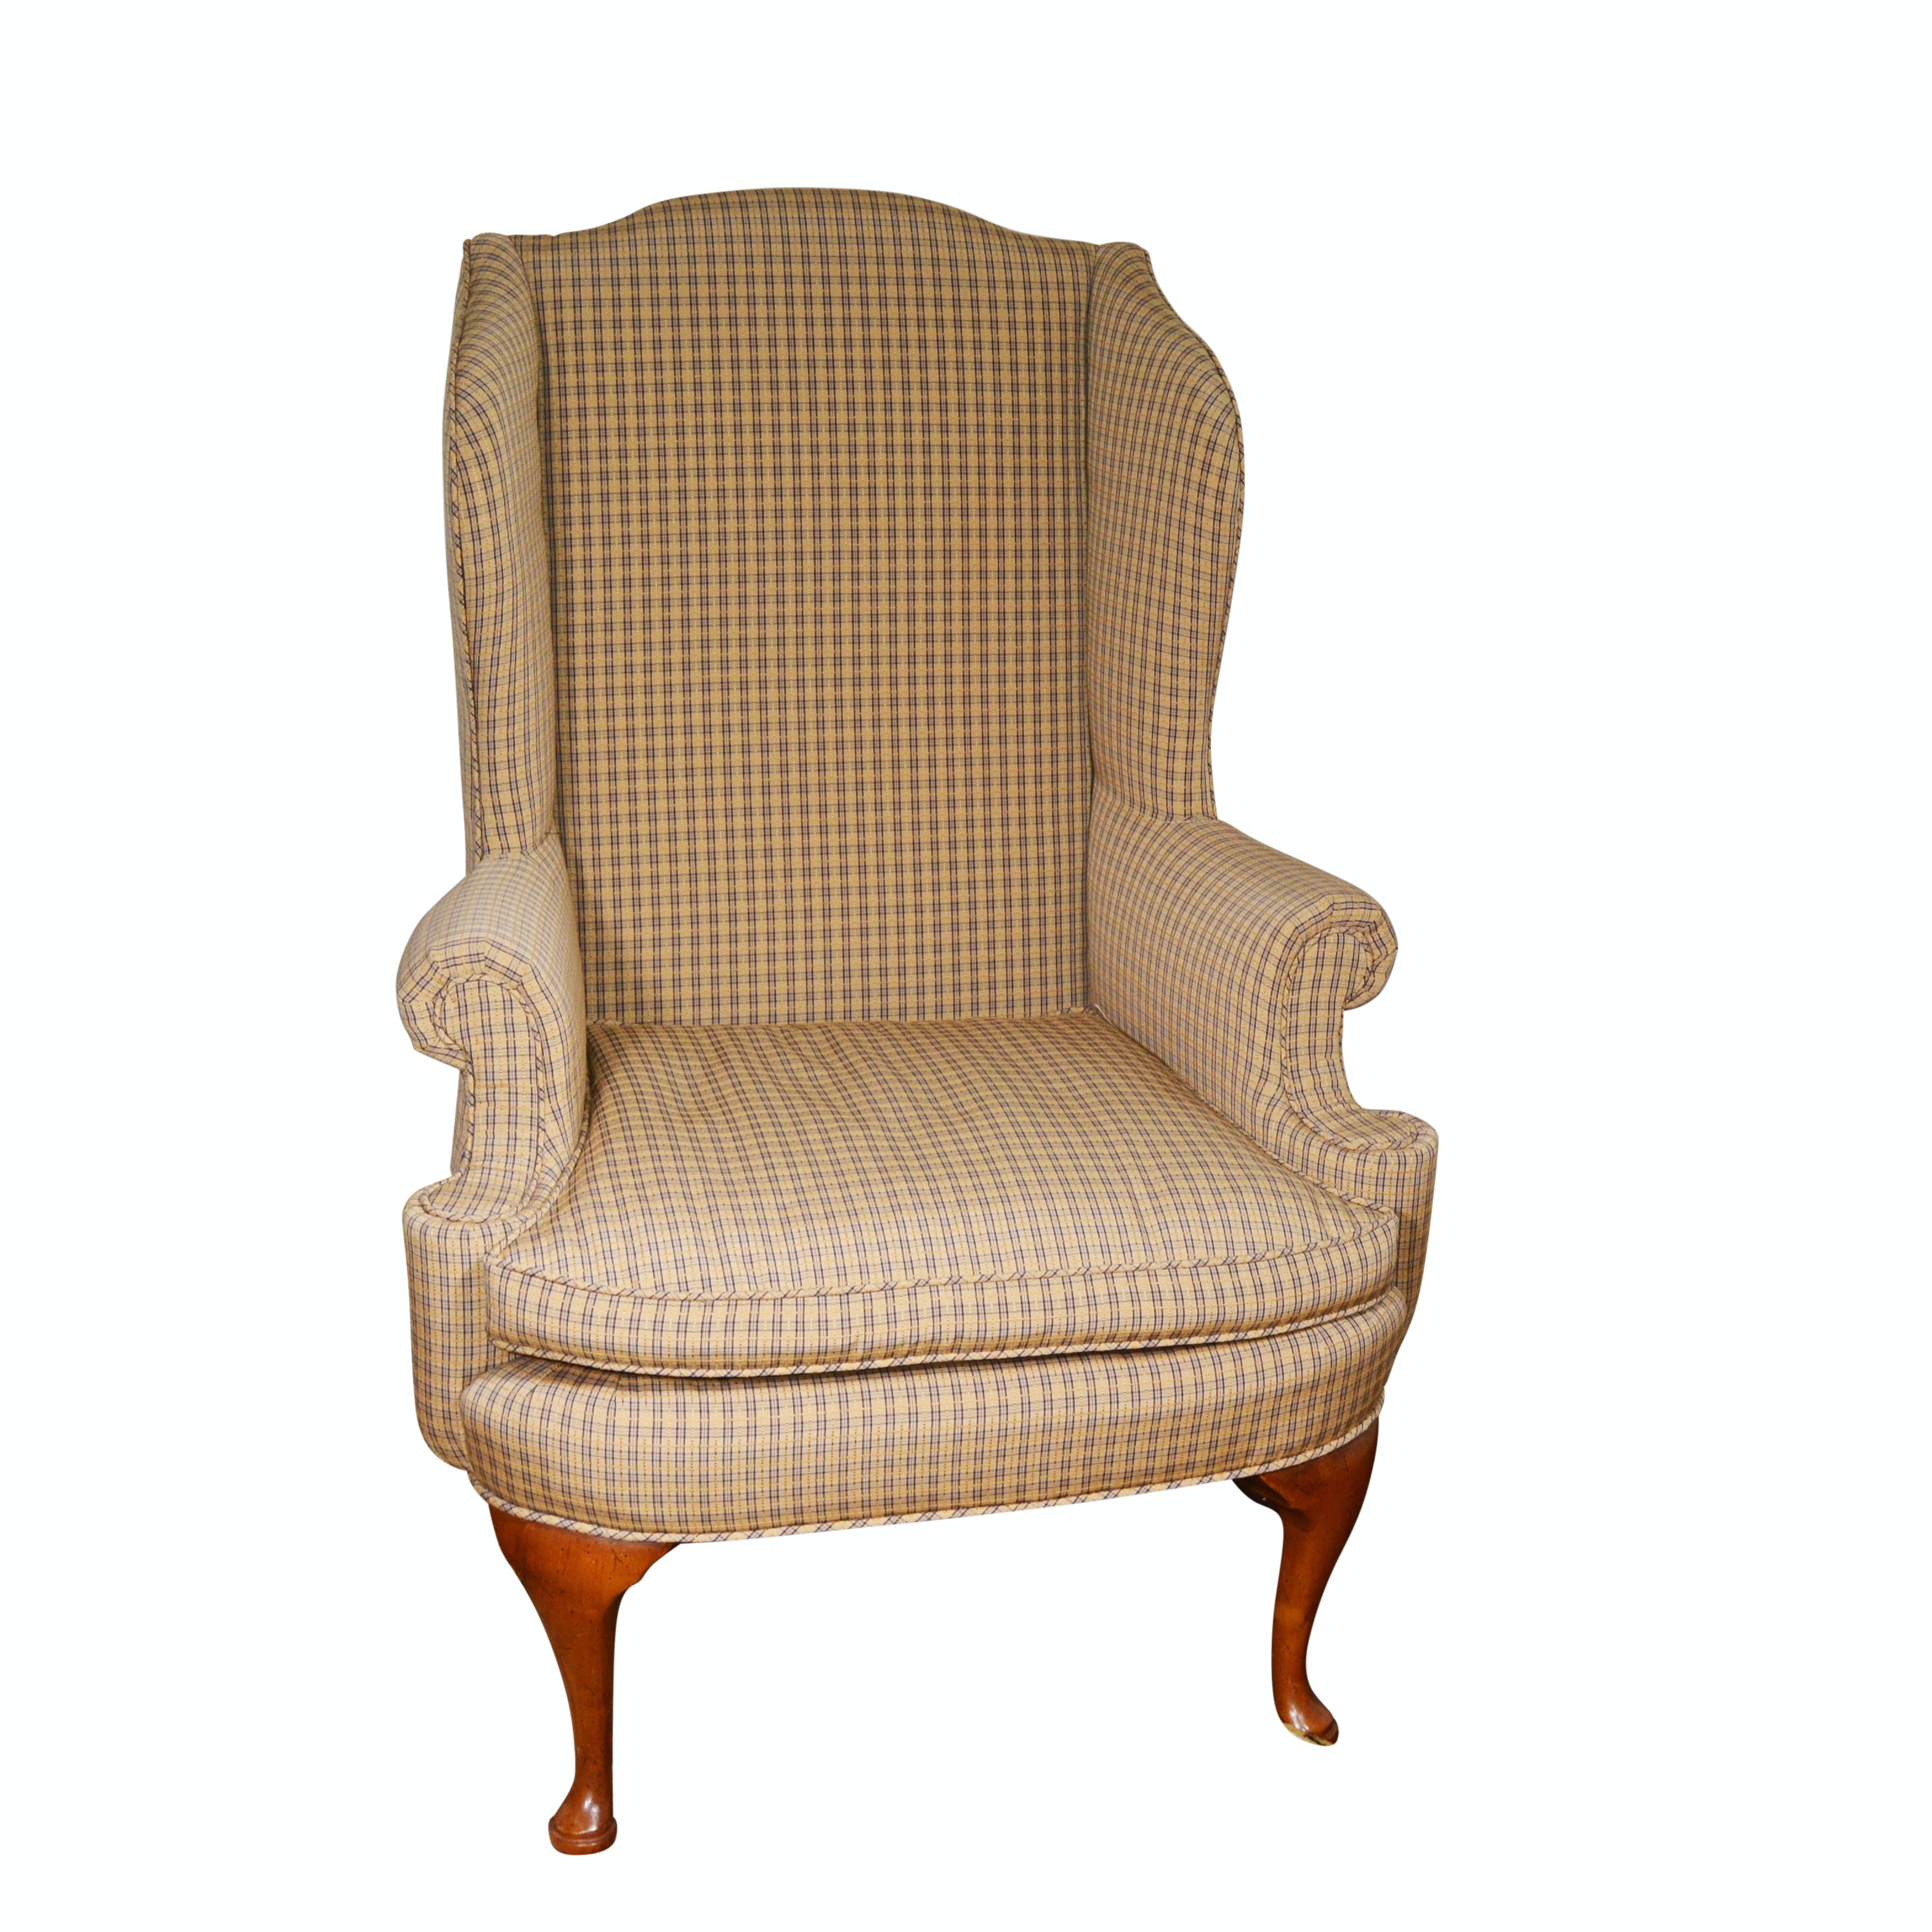 Queen Anne Style Upholstered Wing Chair, 20th Century